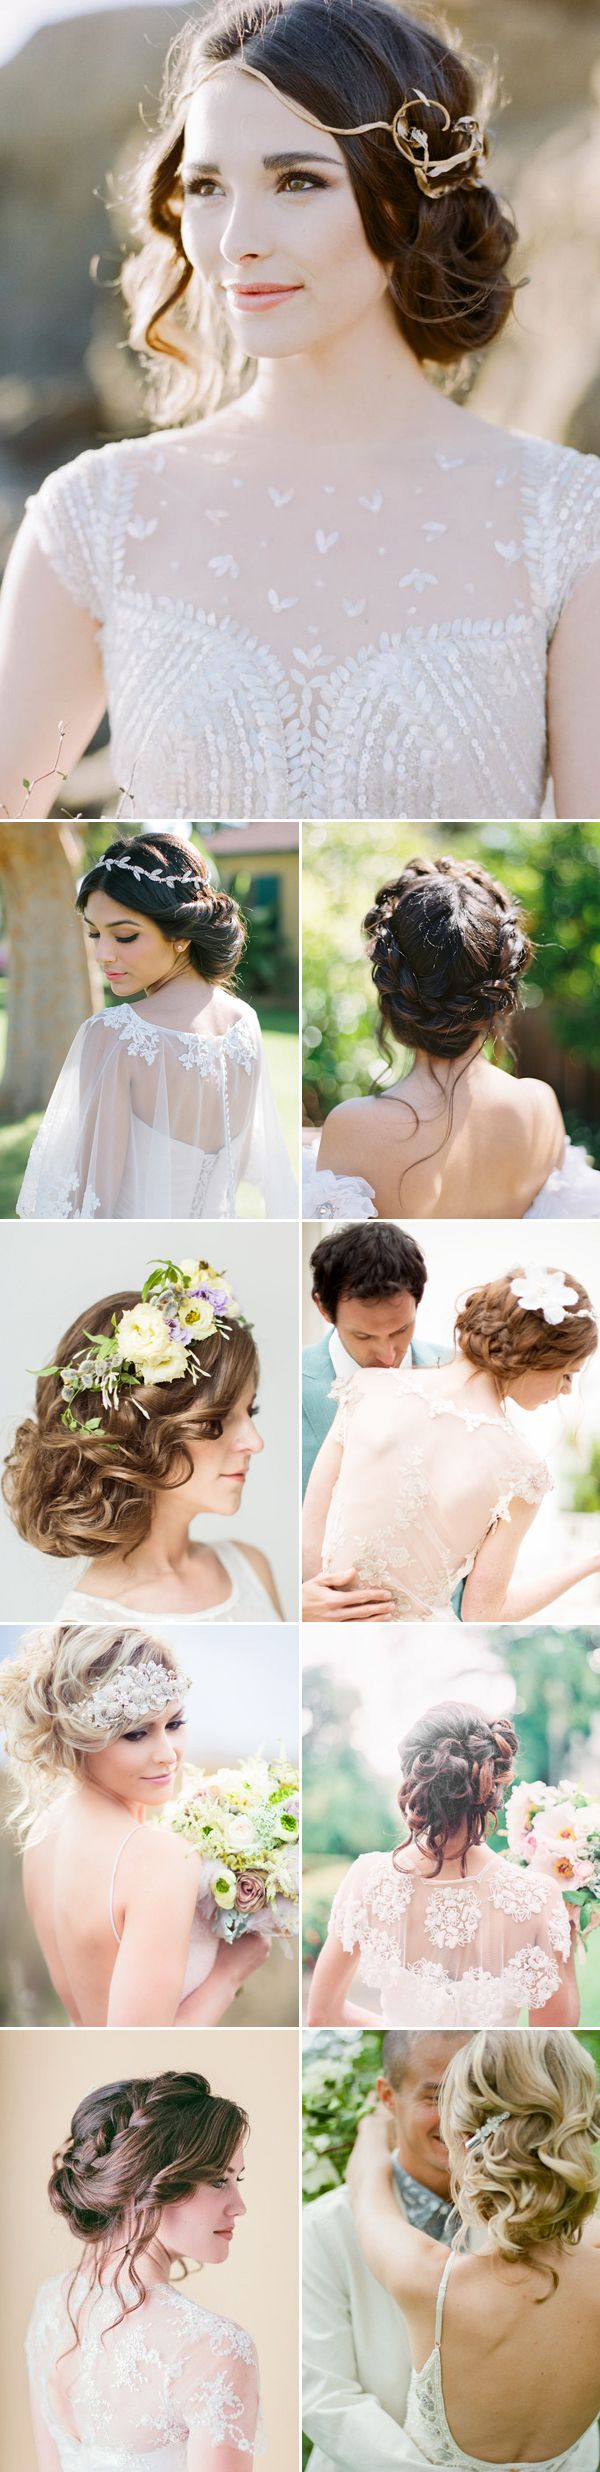 131 best Bridal Hairstyles images on Pinterest | Bridal hair, Bridal ...